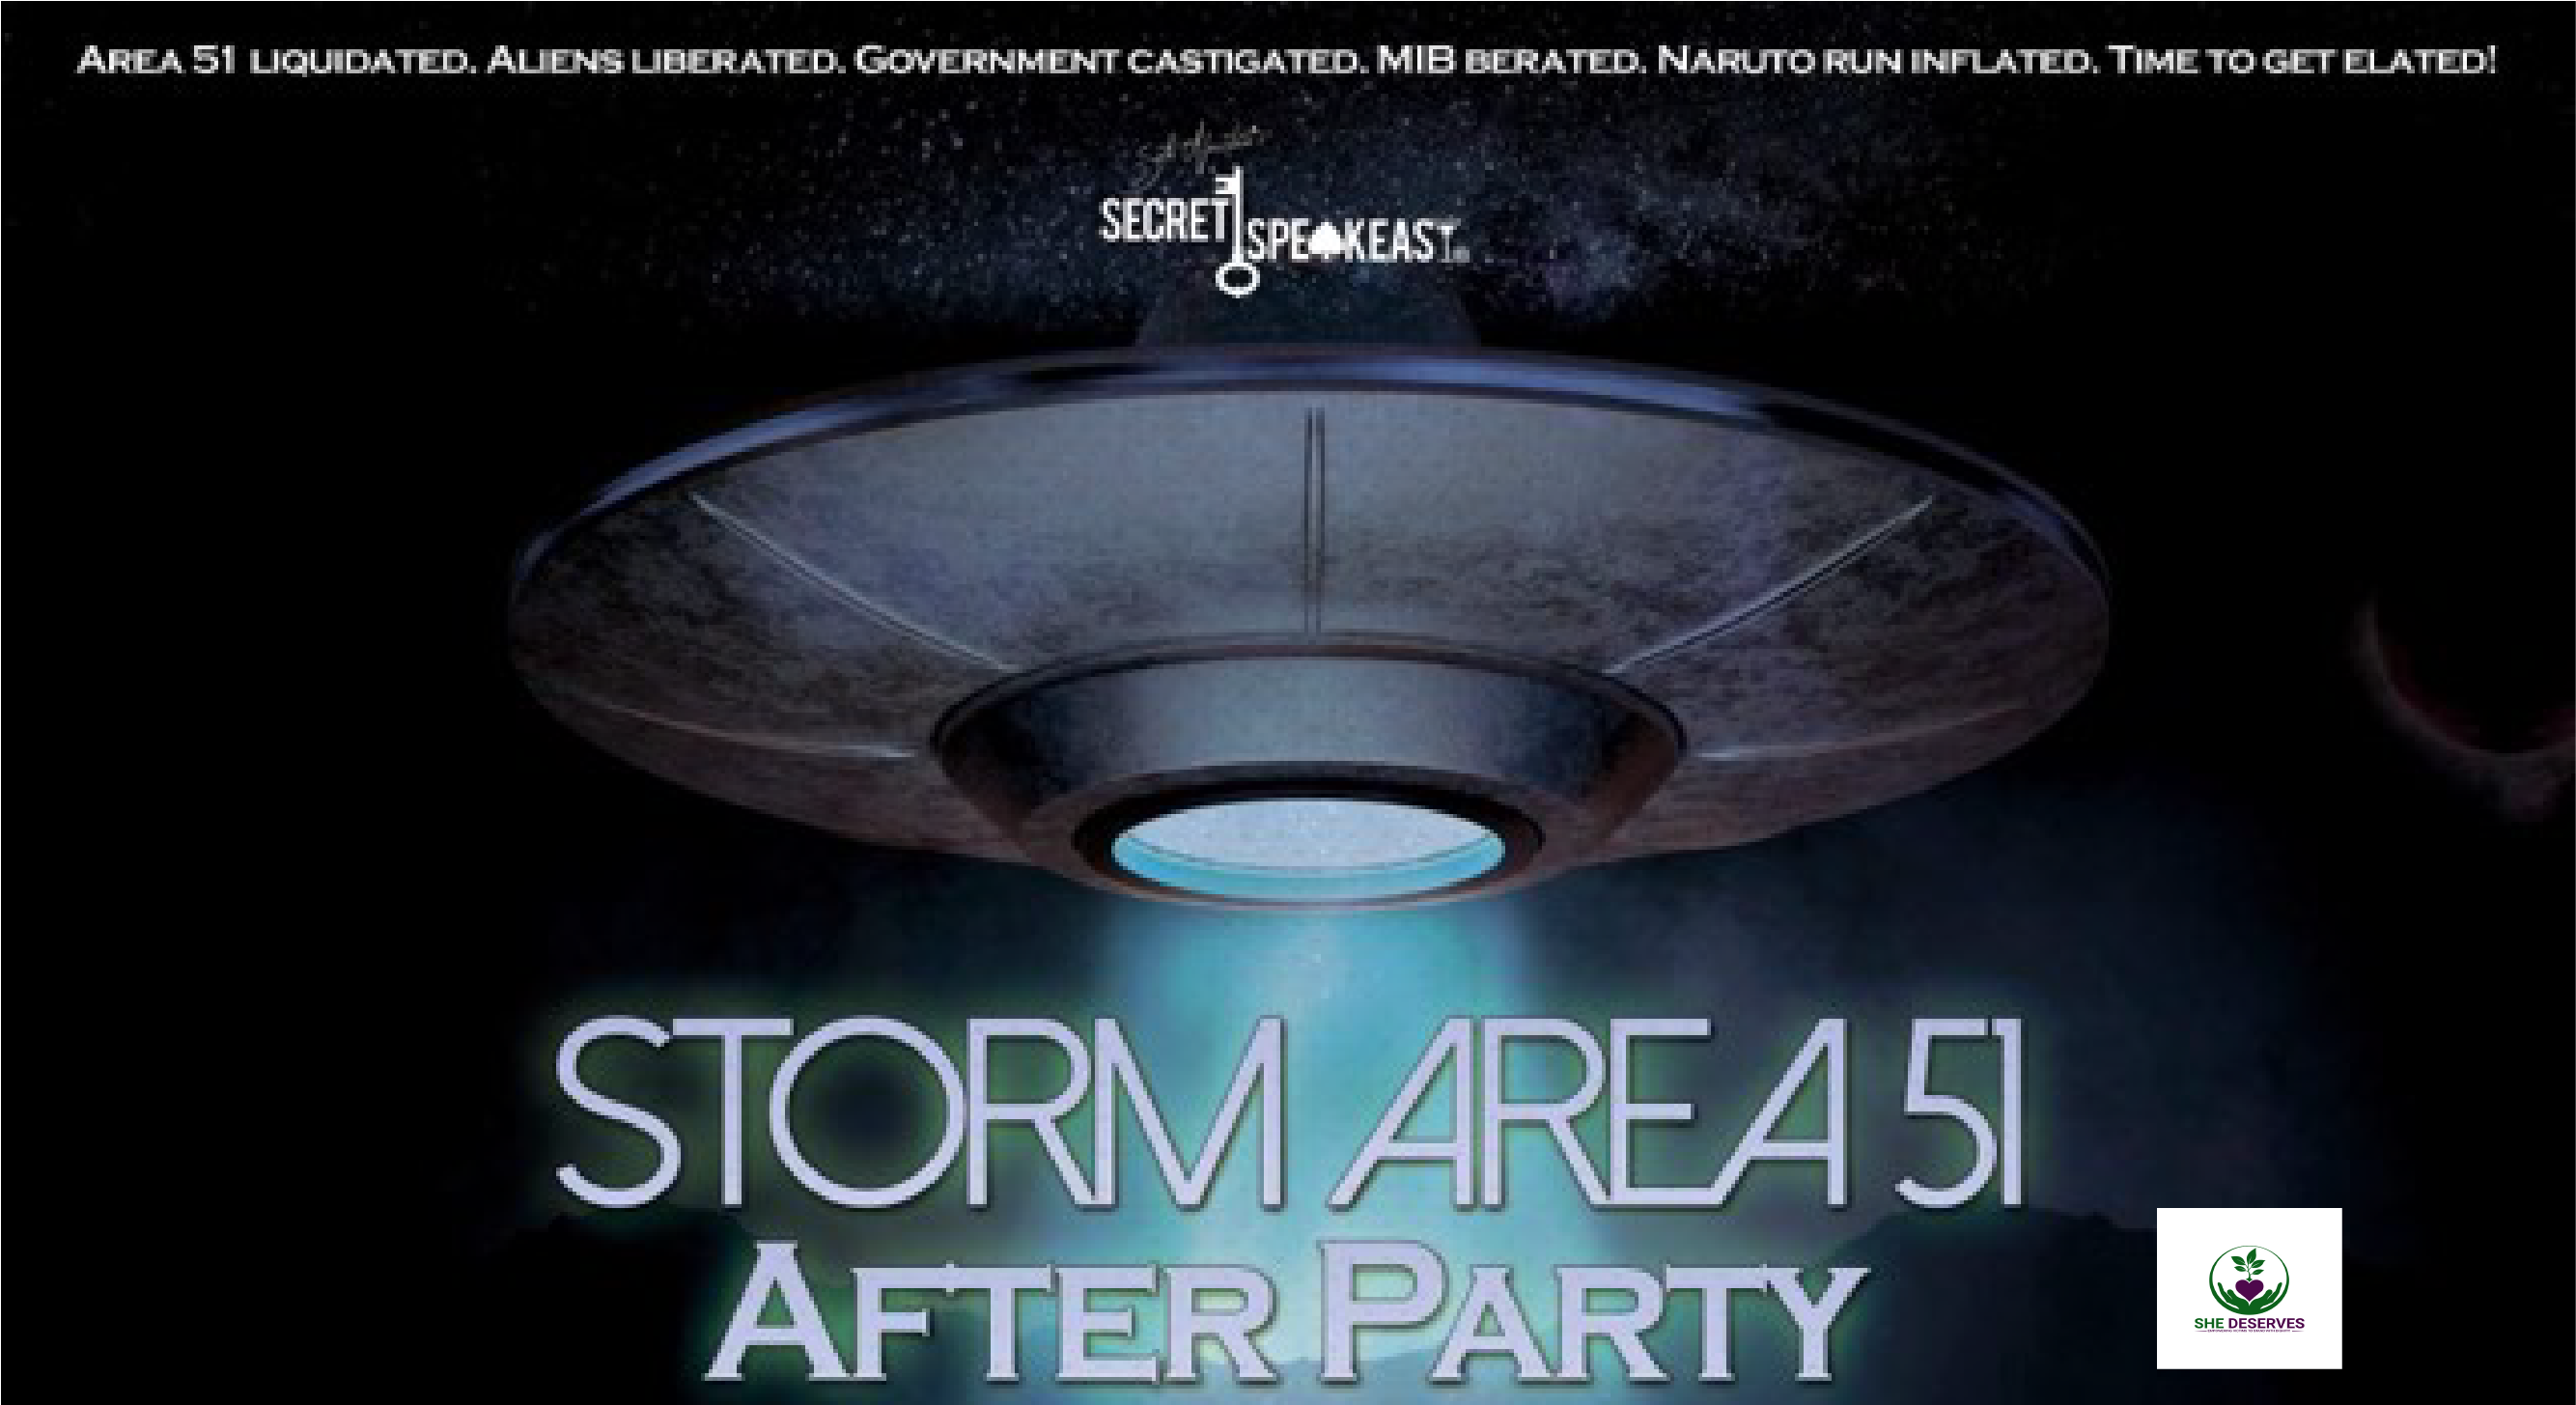 Seth Neustein Secret Speakeasy Storm Area 51 After Party Magician Mentalist Pittsburgh Pennsylvania